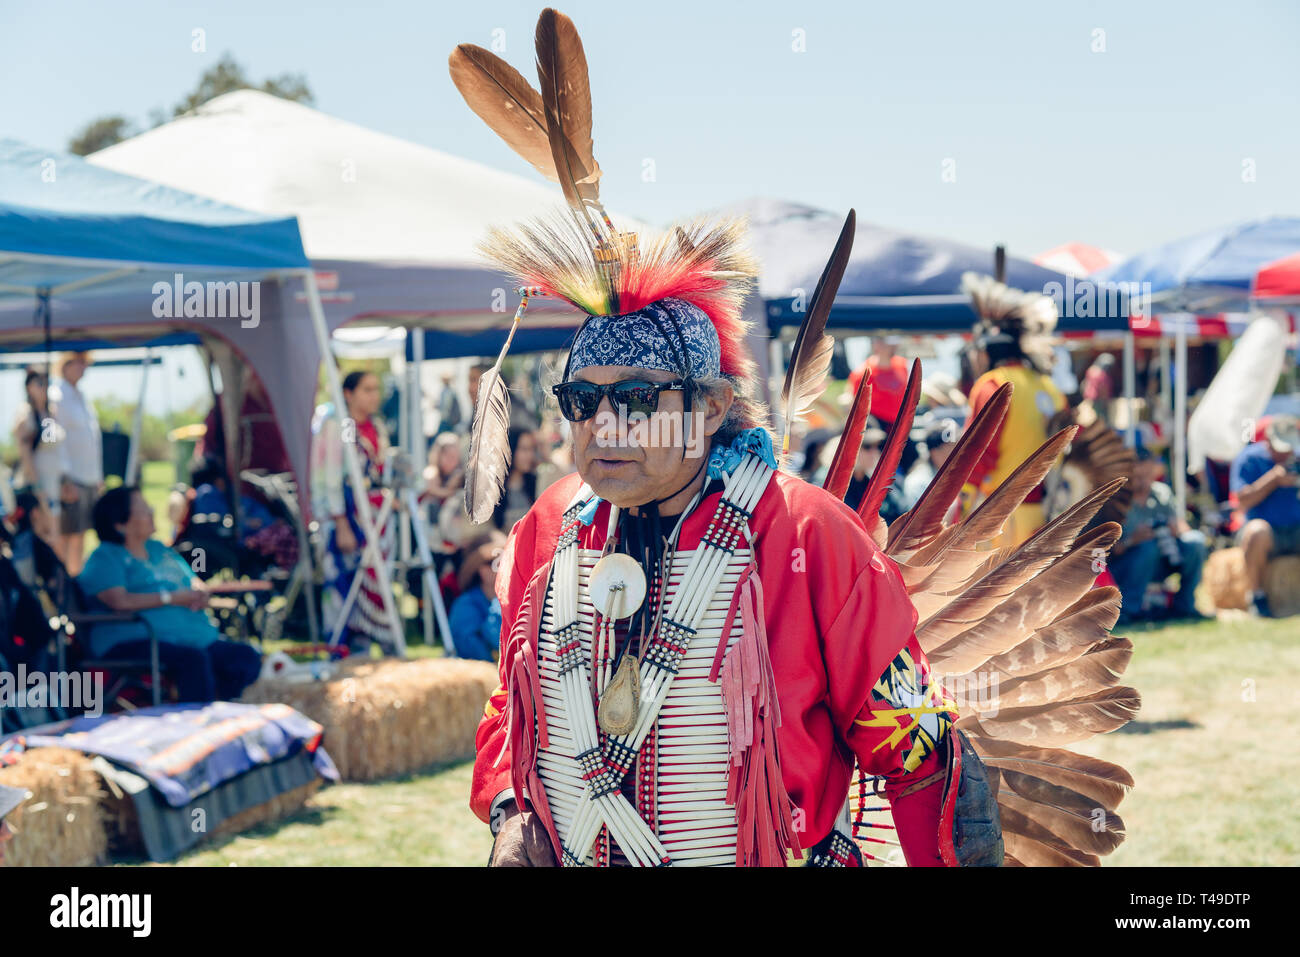 Native American Man in Full Regalia at 2019 21st Annual Chumash Day Powwow and Intertribal Gathering, Malibu, California, April 13, 2019 - Stock Image